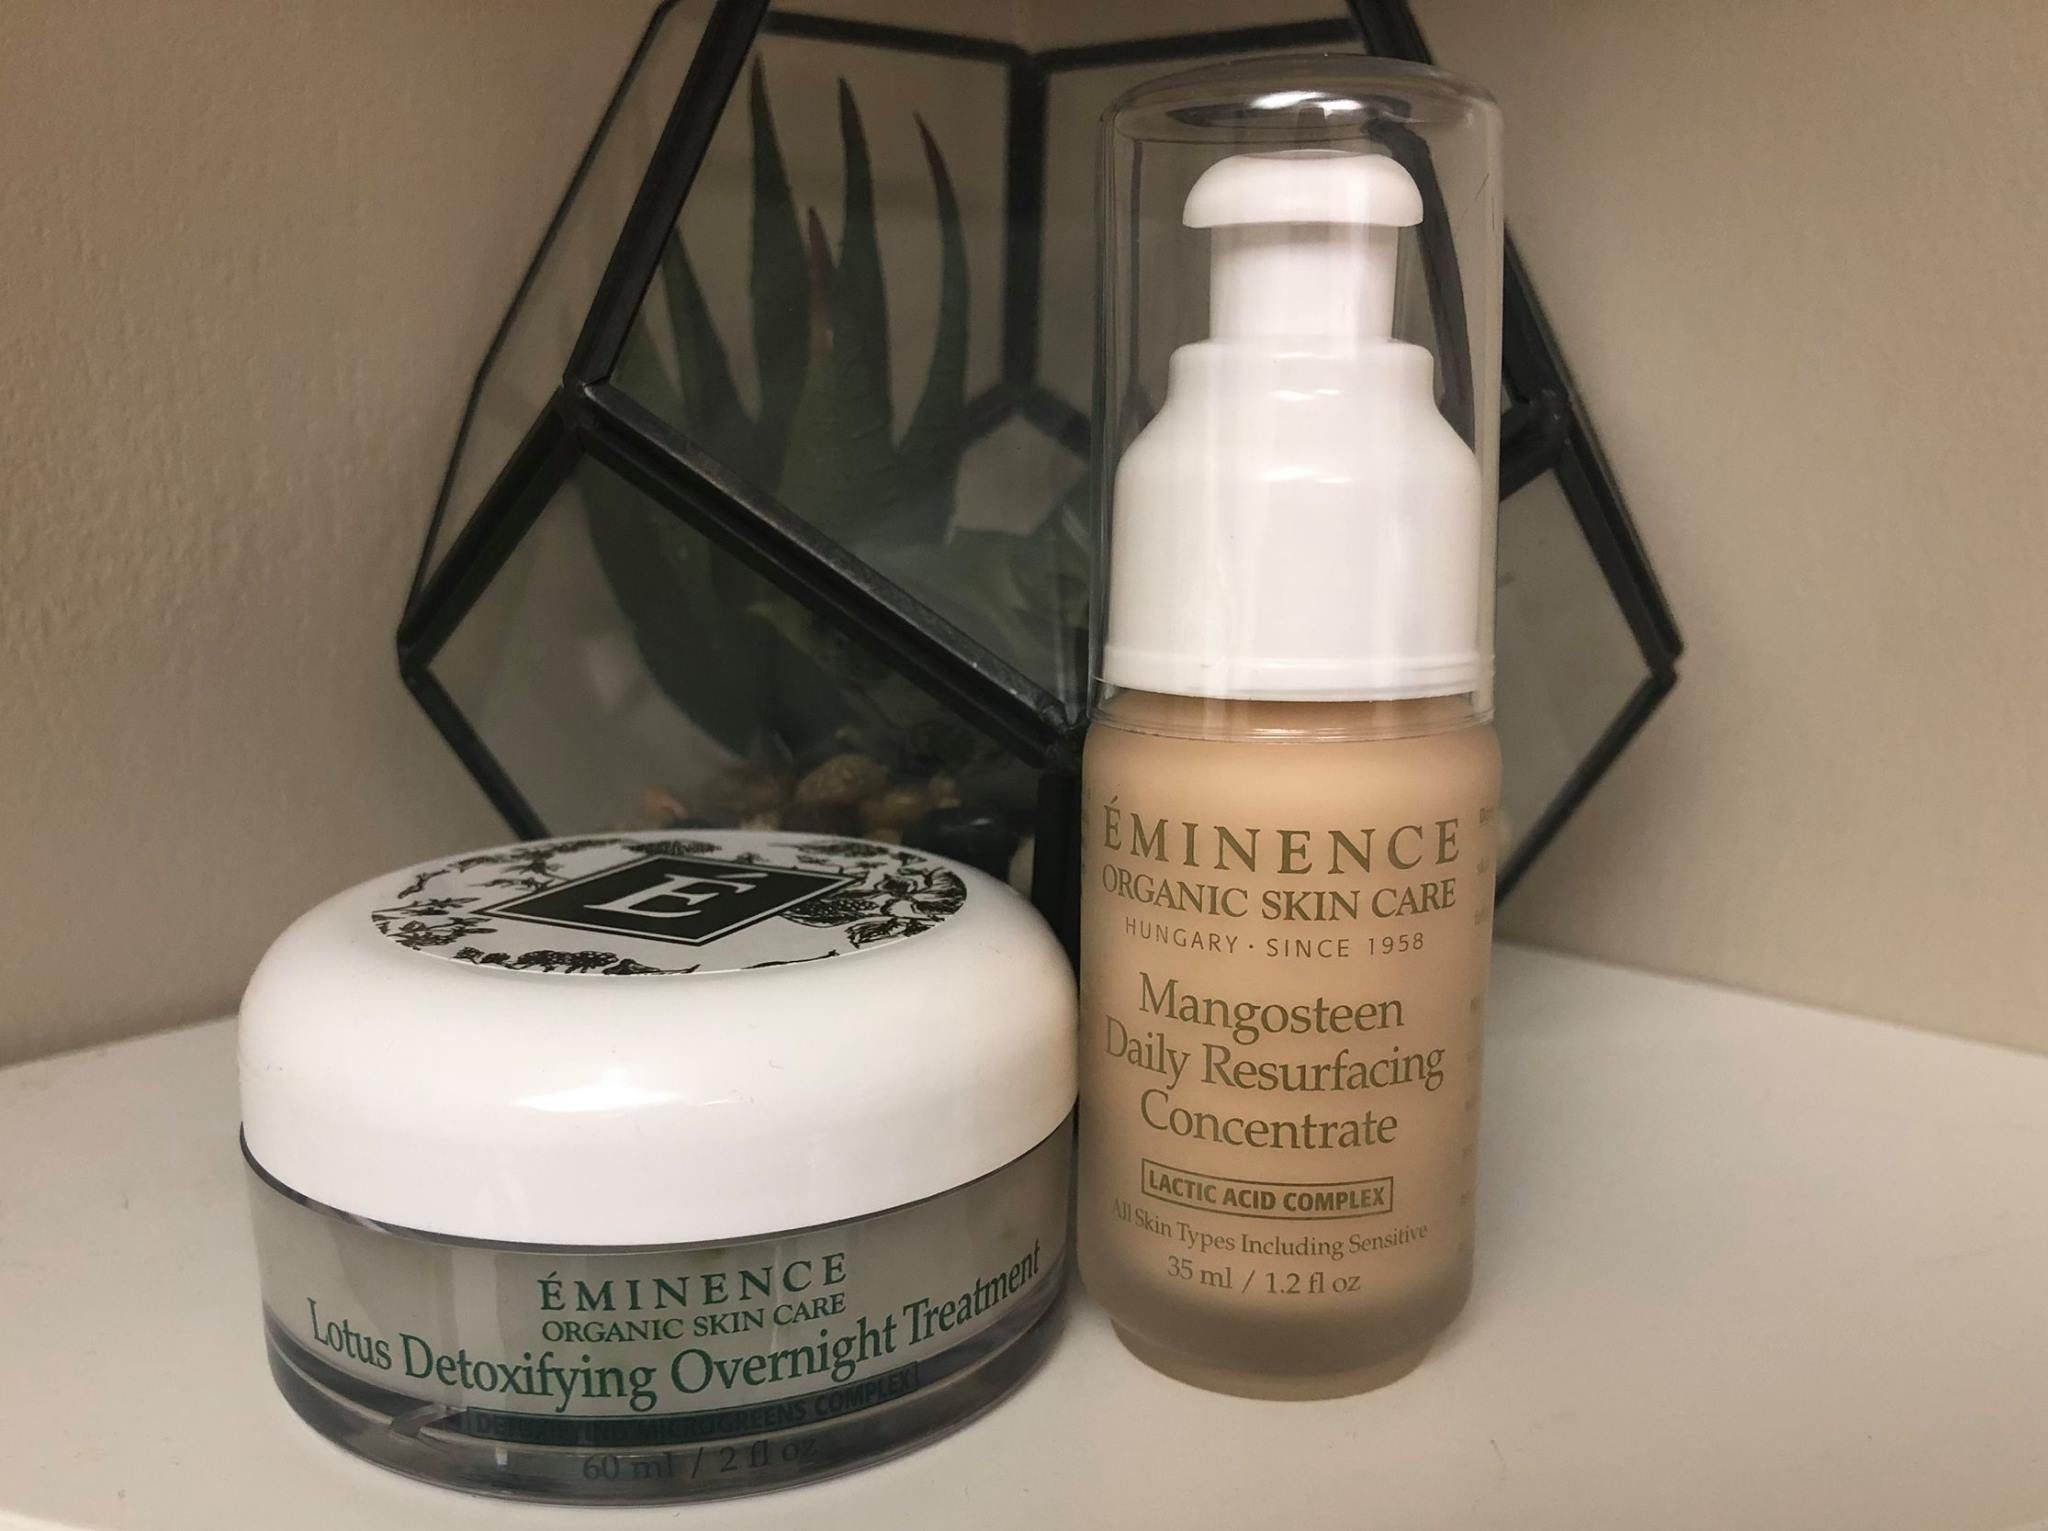 Pin By Ali On 21 In 2020 Moisturizer Eminence Organic Skin Care Overnight Treatment